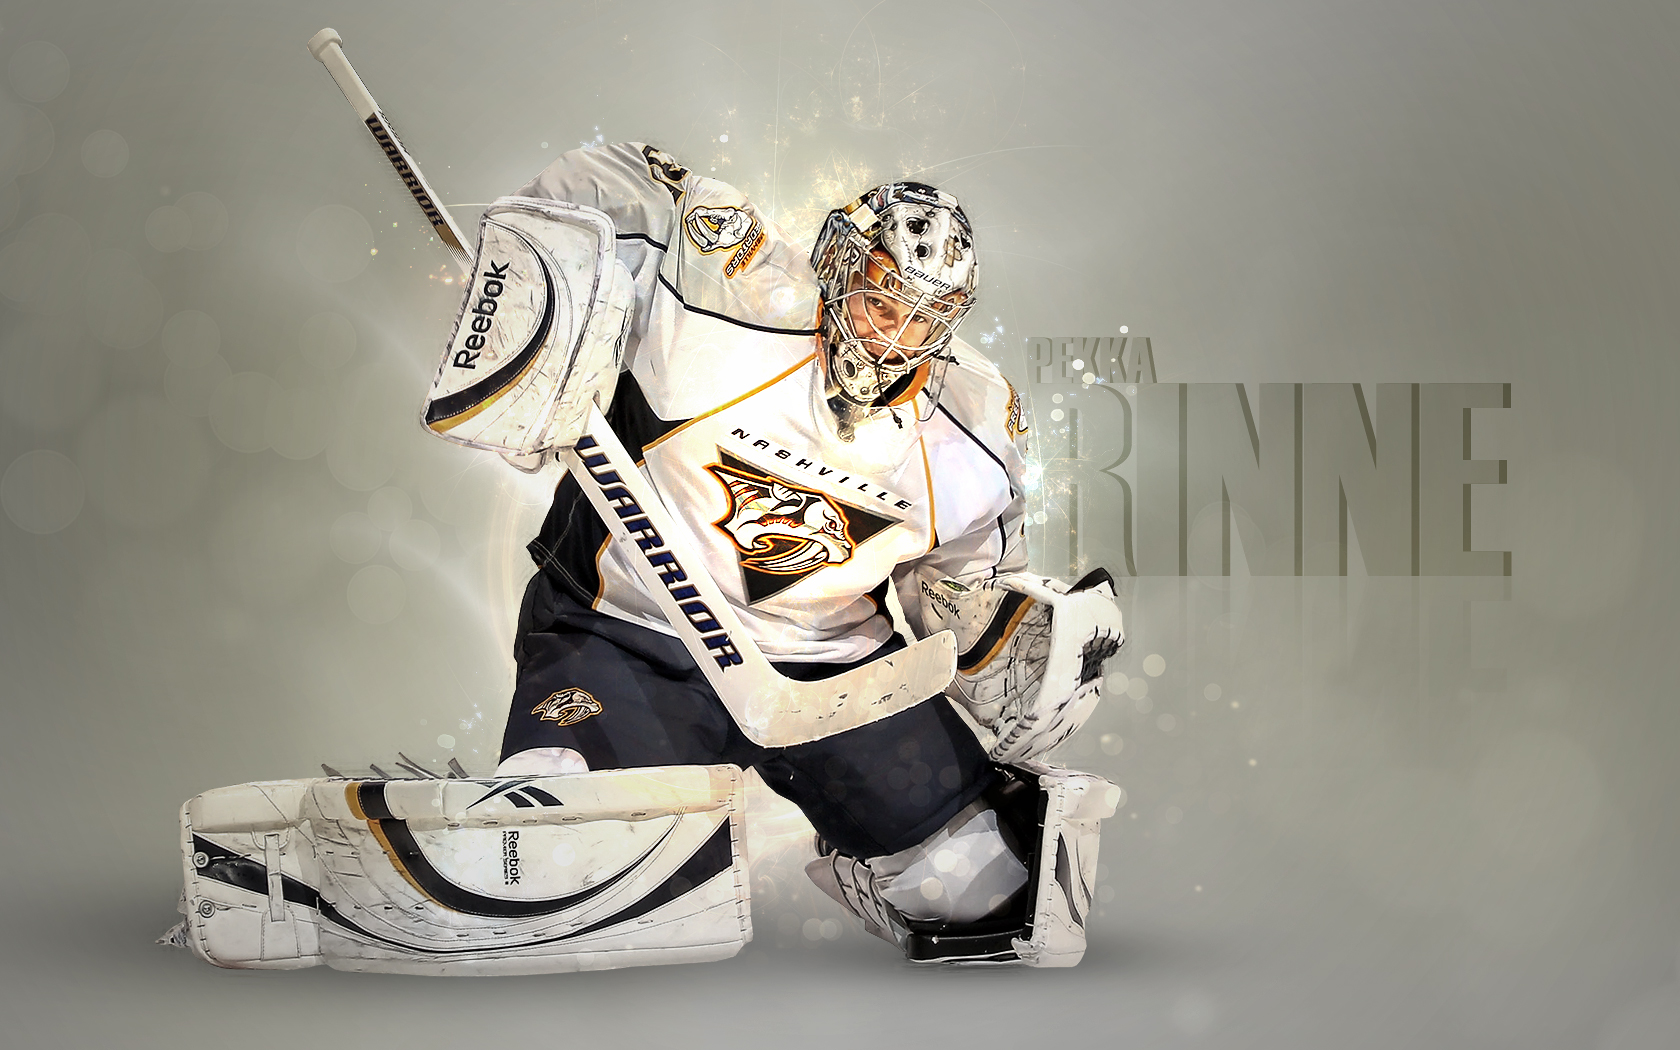 33 images about hockey on We Heart It See more about pekka rinne 1680x1050